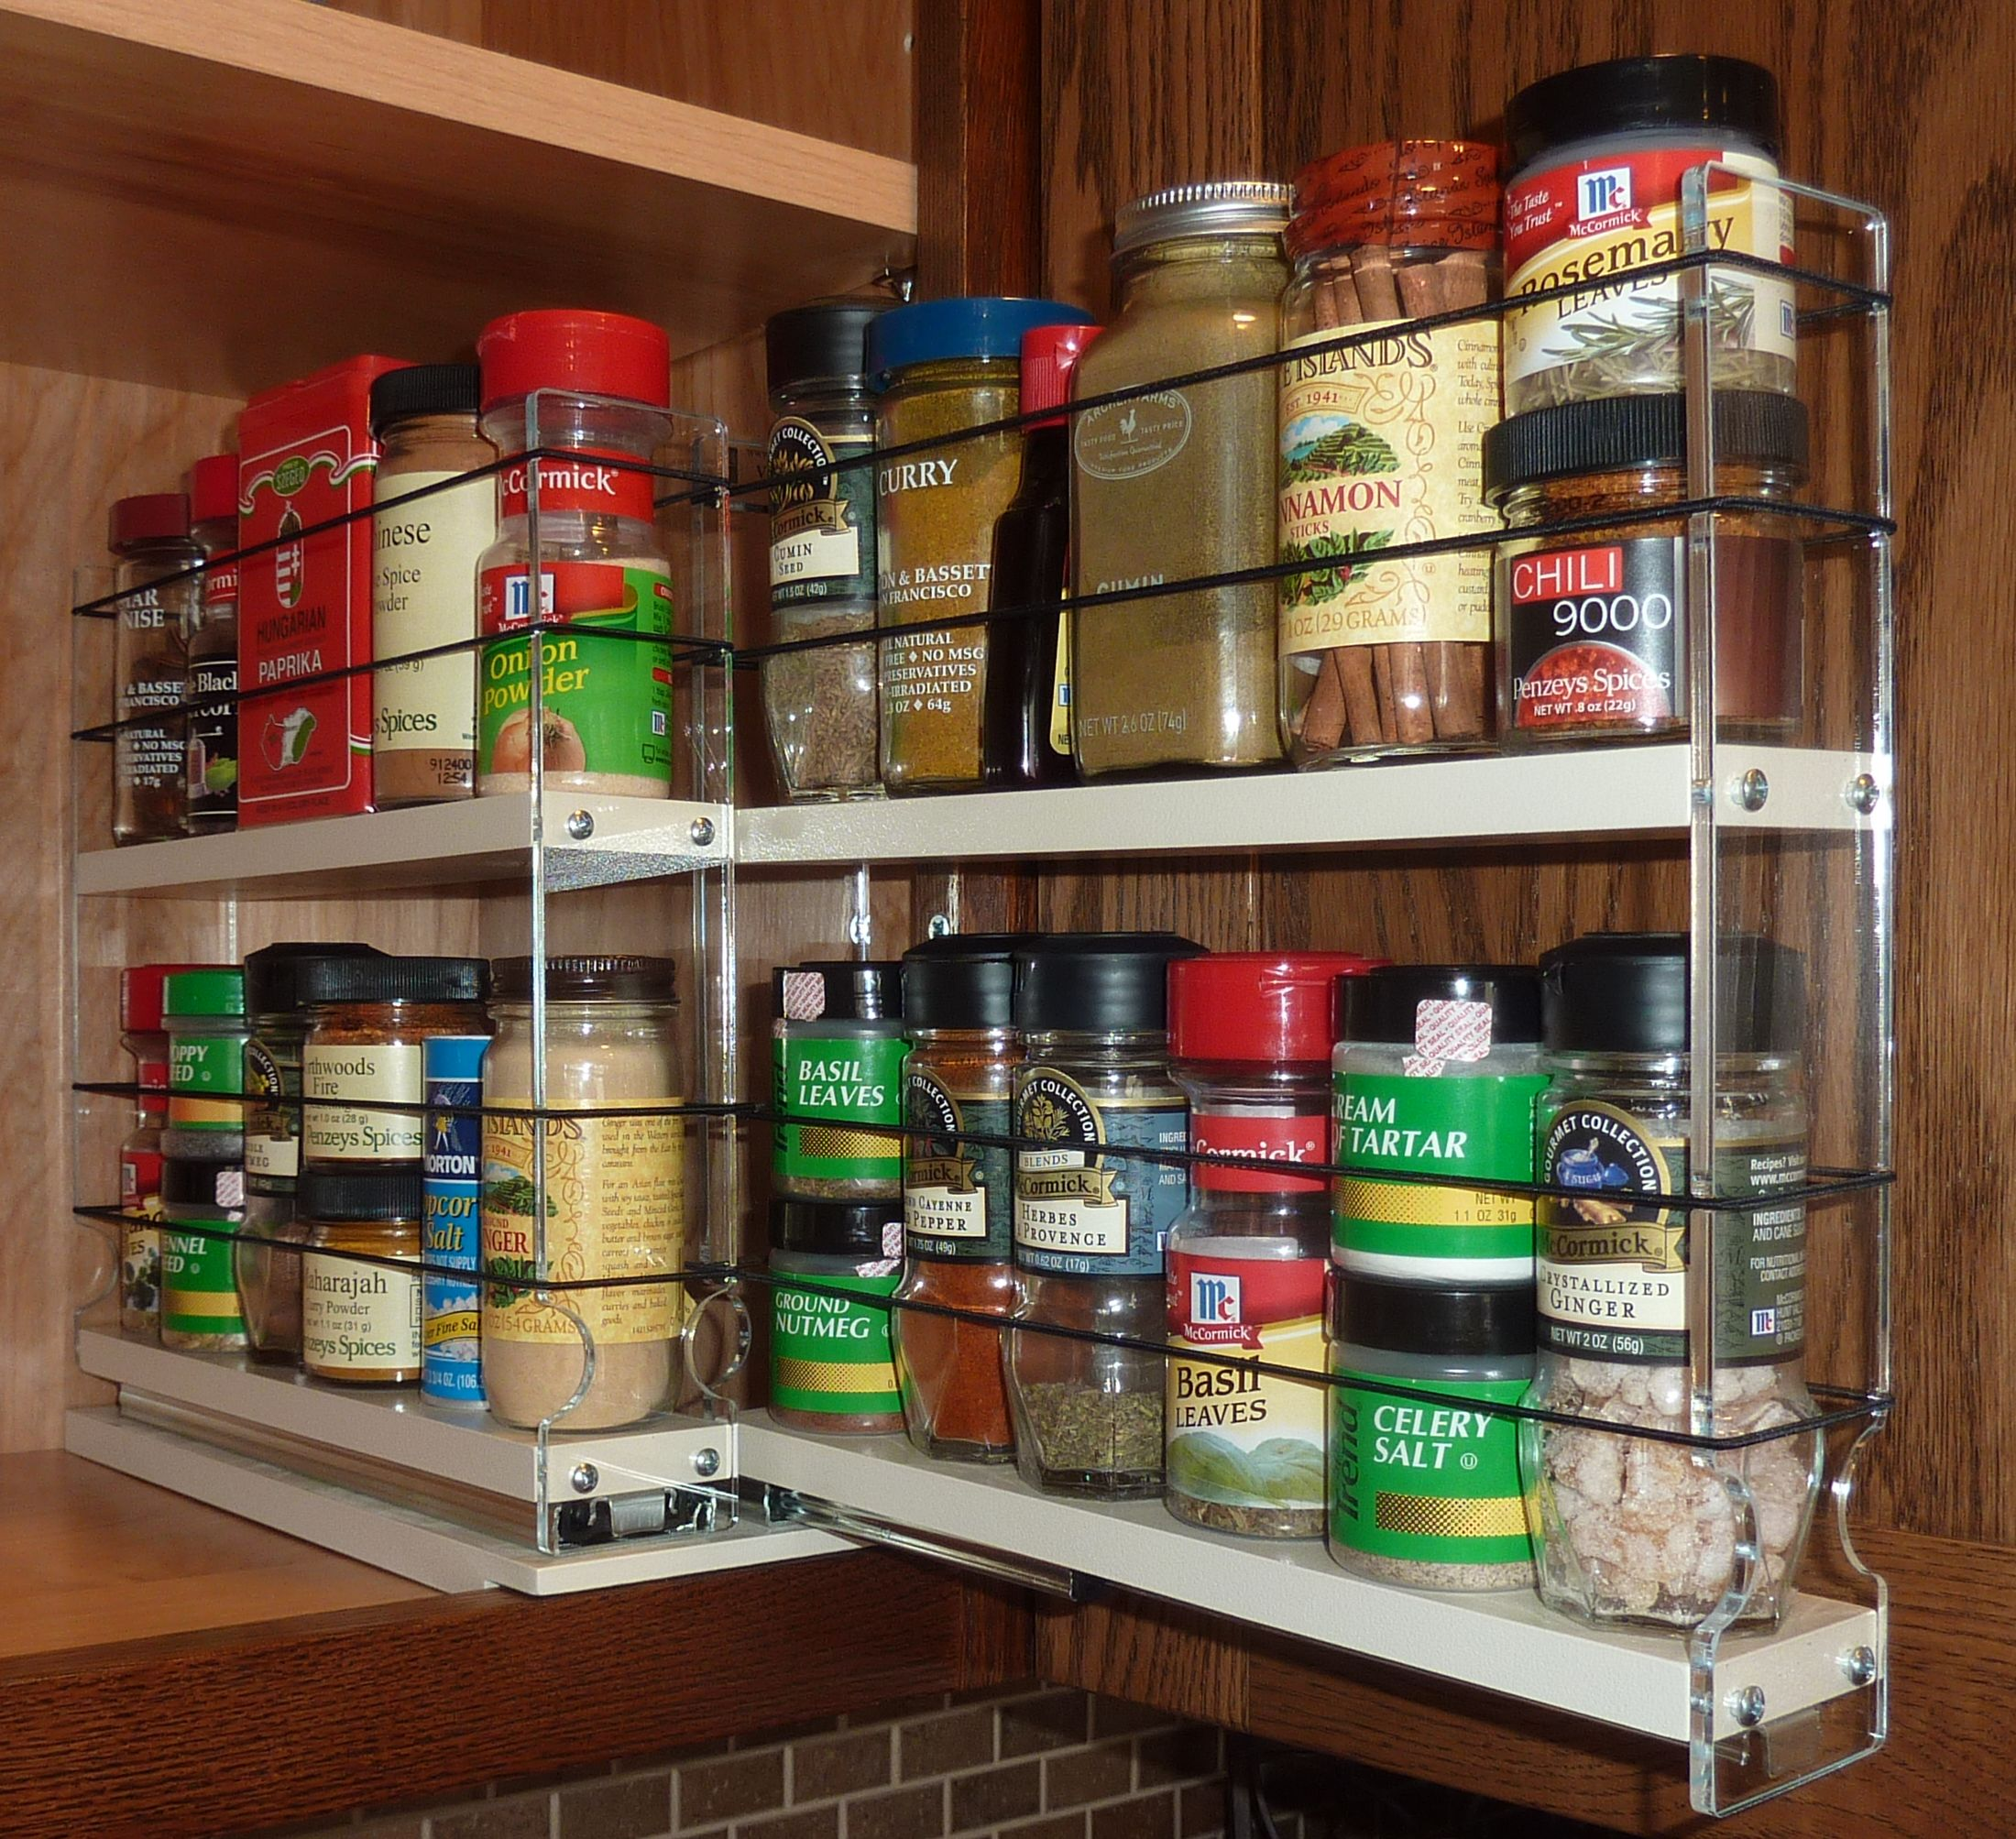 Kitchen Cabinet Spice Racks: Cabinet Door Spice Racks